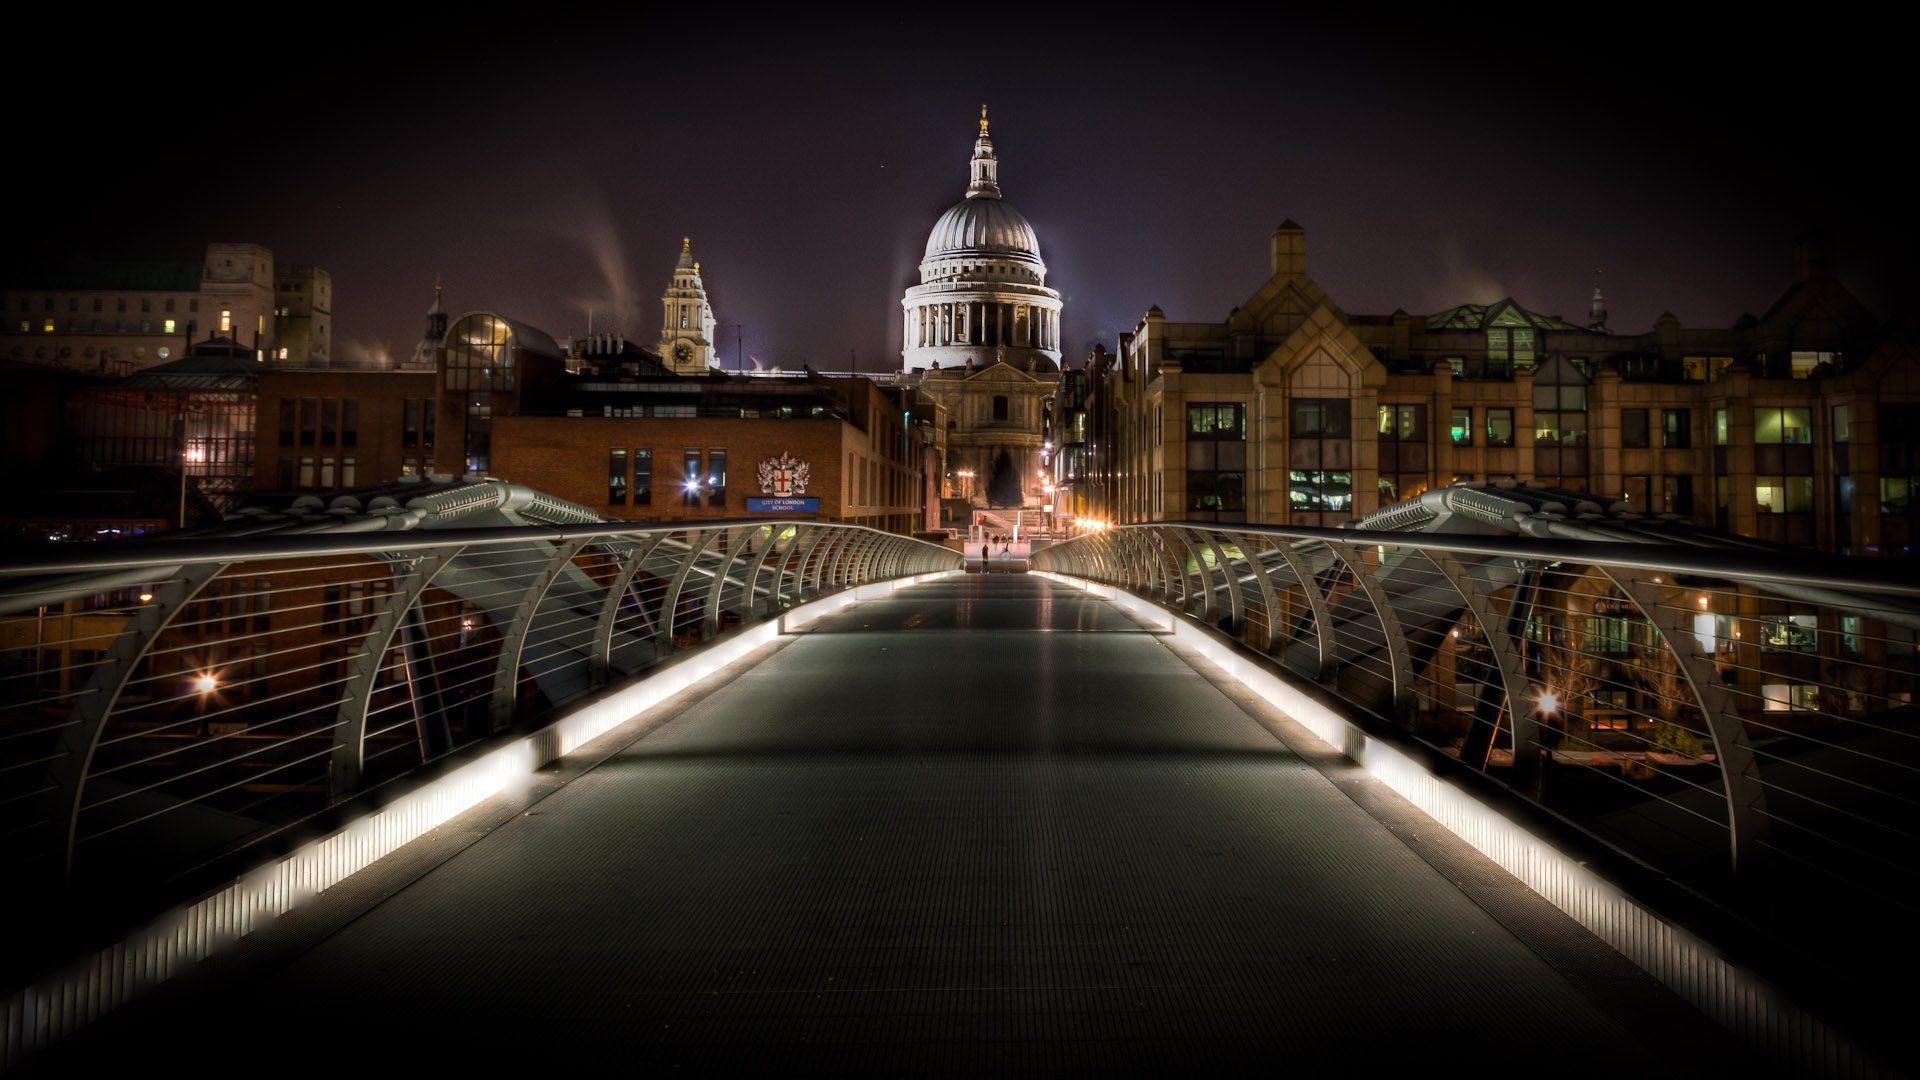 St Paul's by night from the millennium bridge